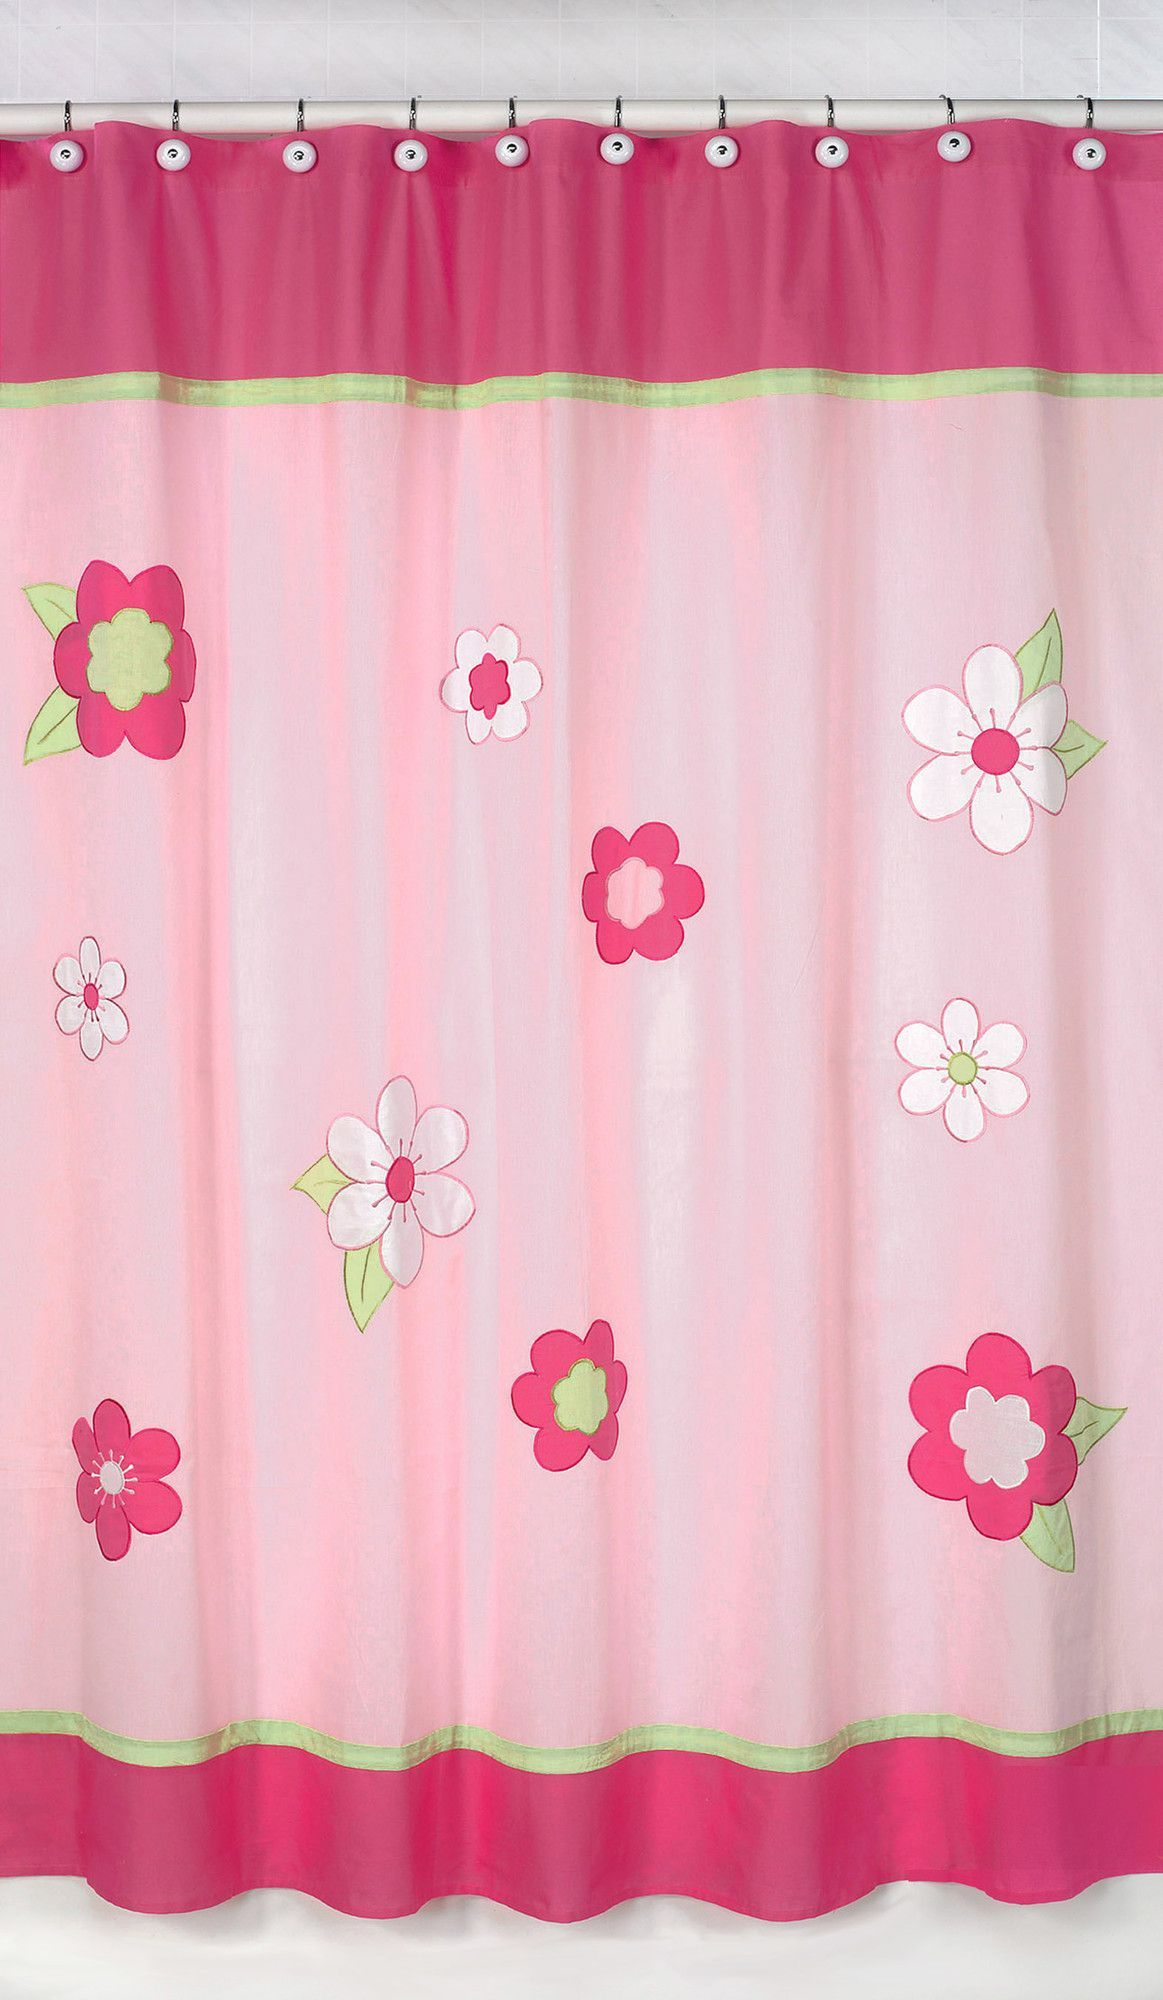 flower pink and green cotton shower curtain milana pinterest pink flower and cotton. Black Bedroom Furniture Sets. Home Design Ideas